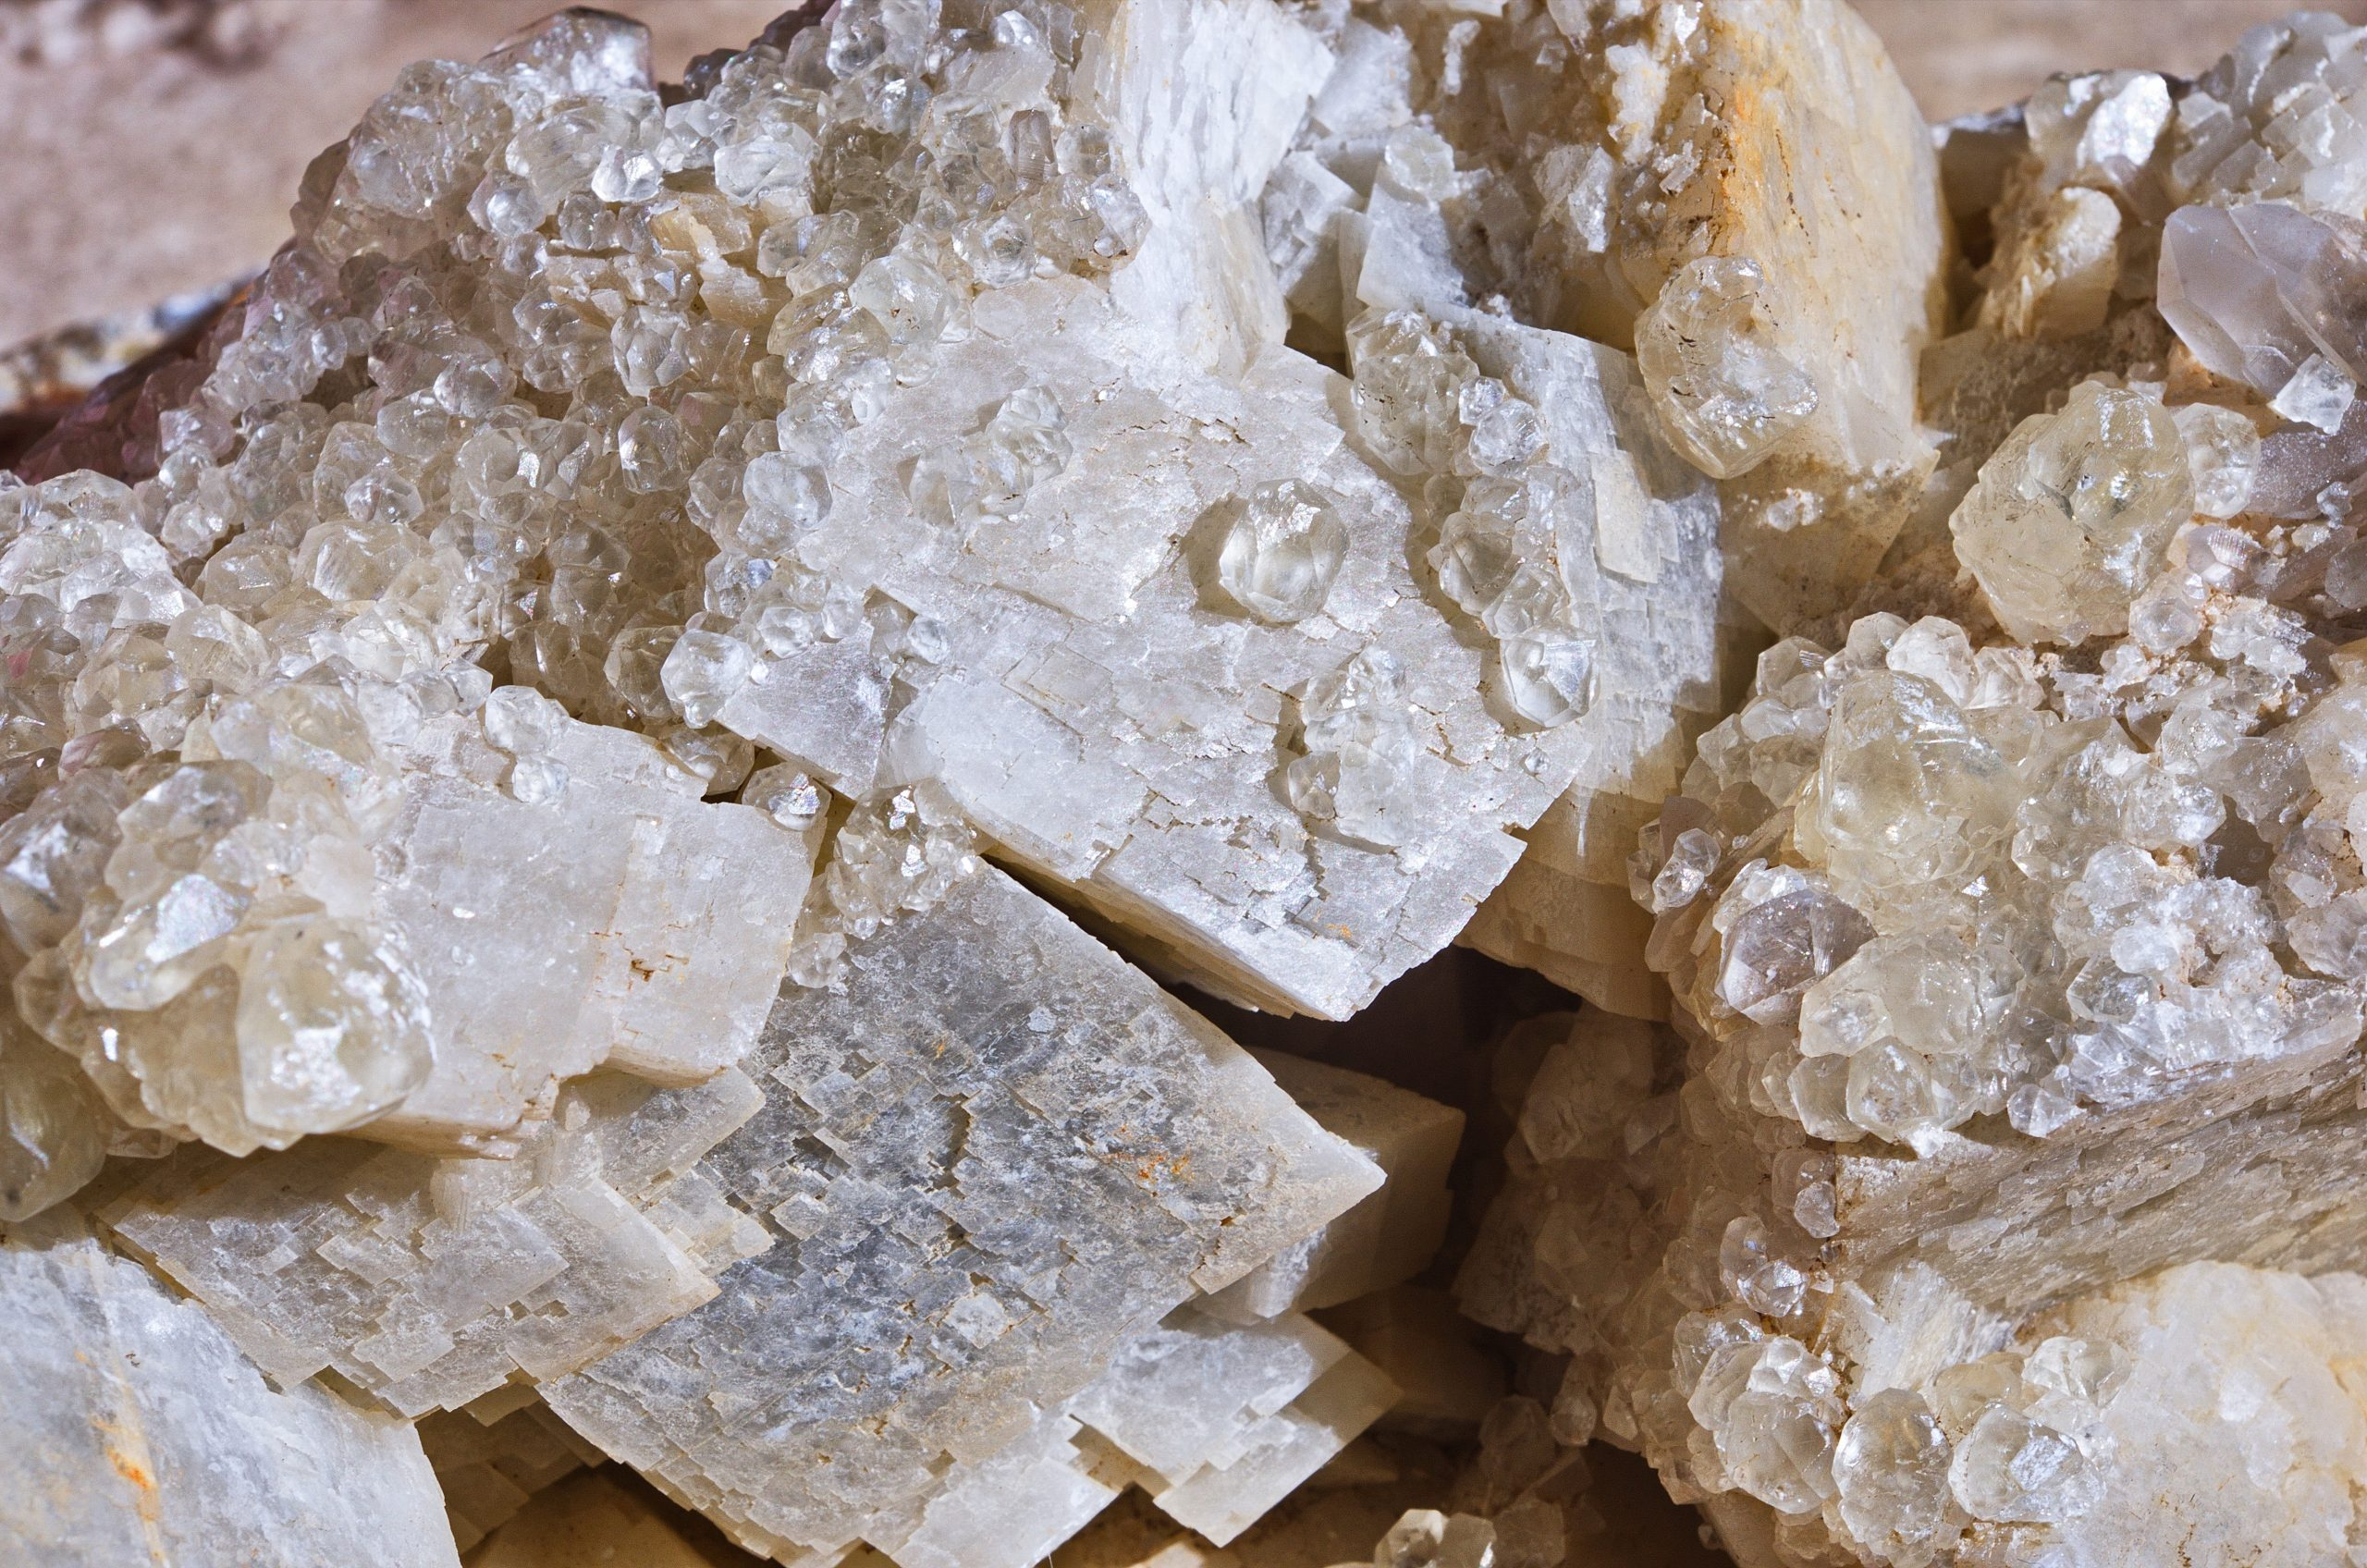 Close-up,Of,Transparent,Quartz,Crystals,Are,Grown,On,Calcite,Crystals.